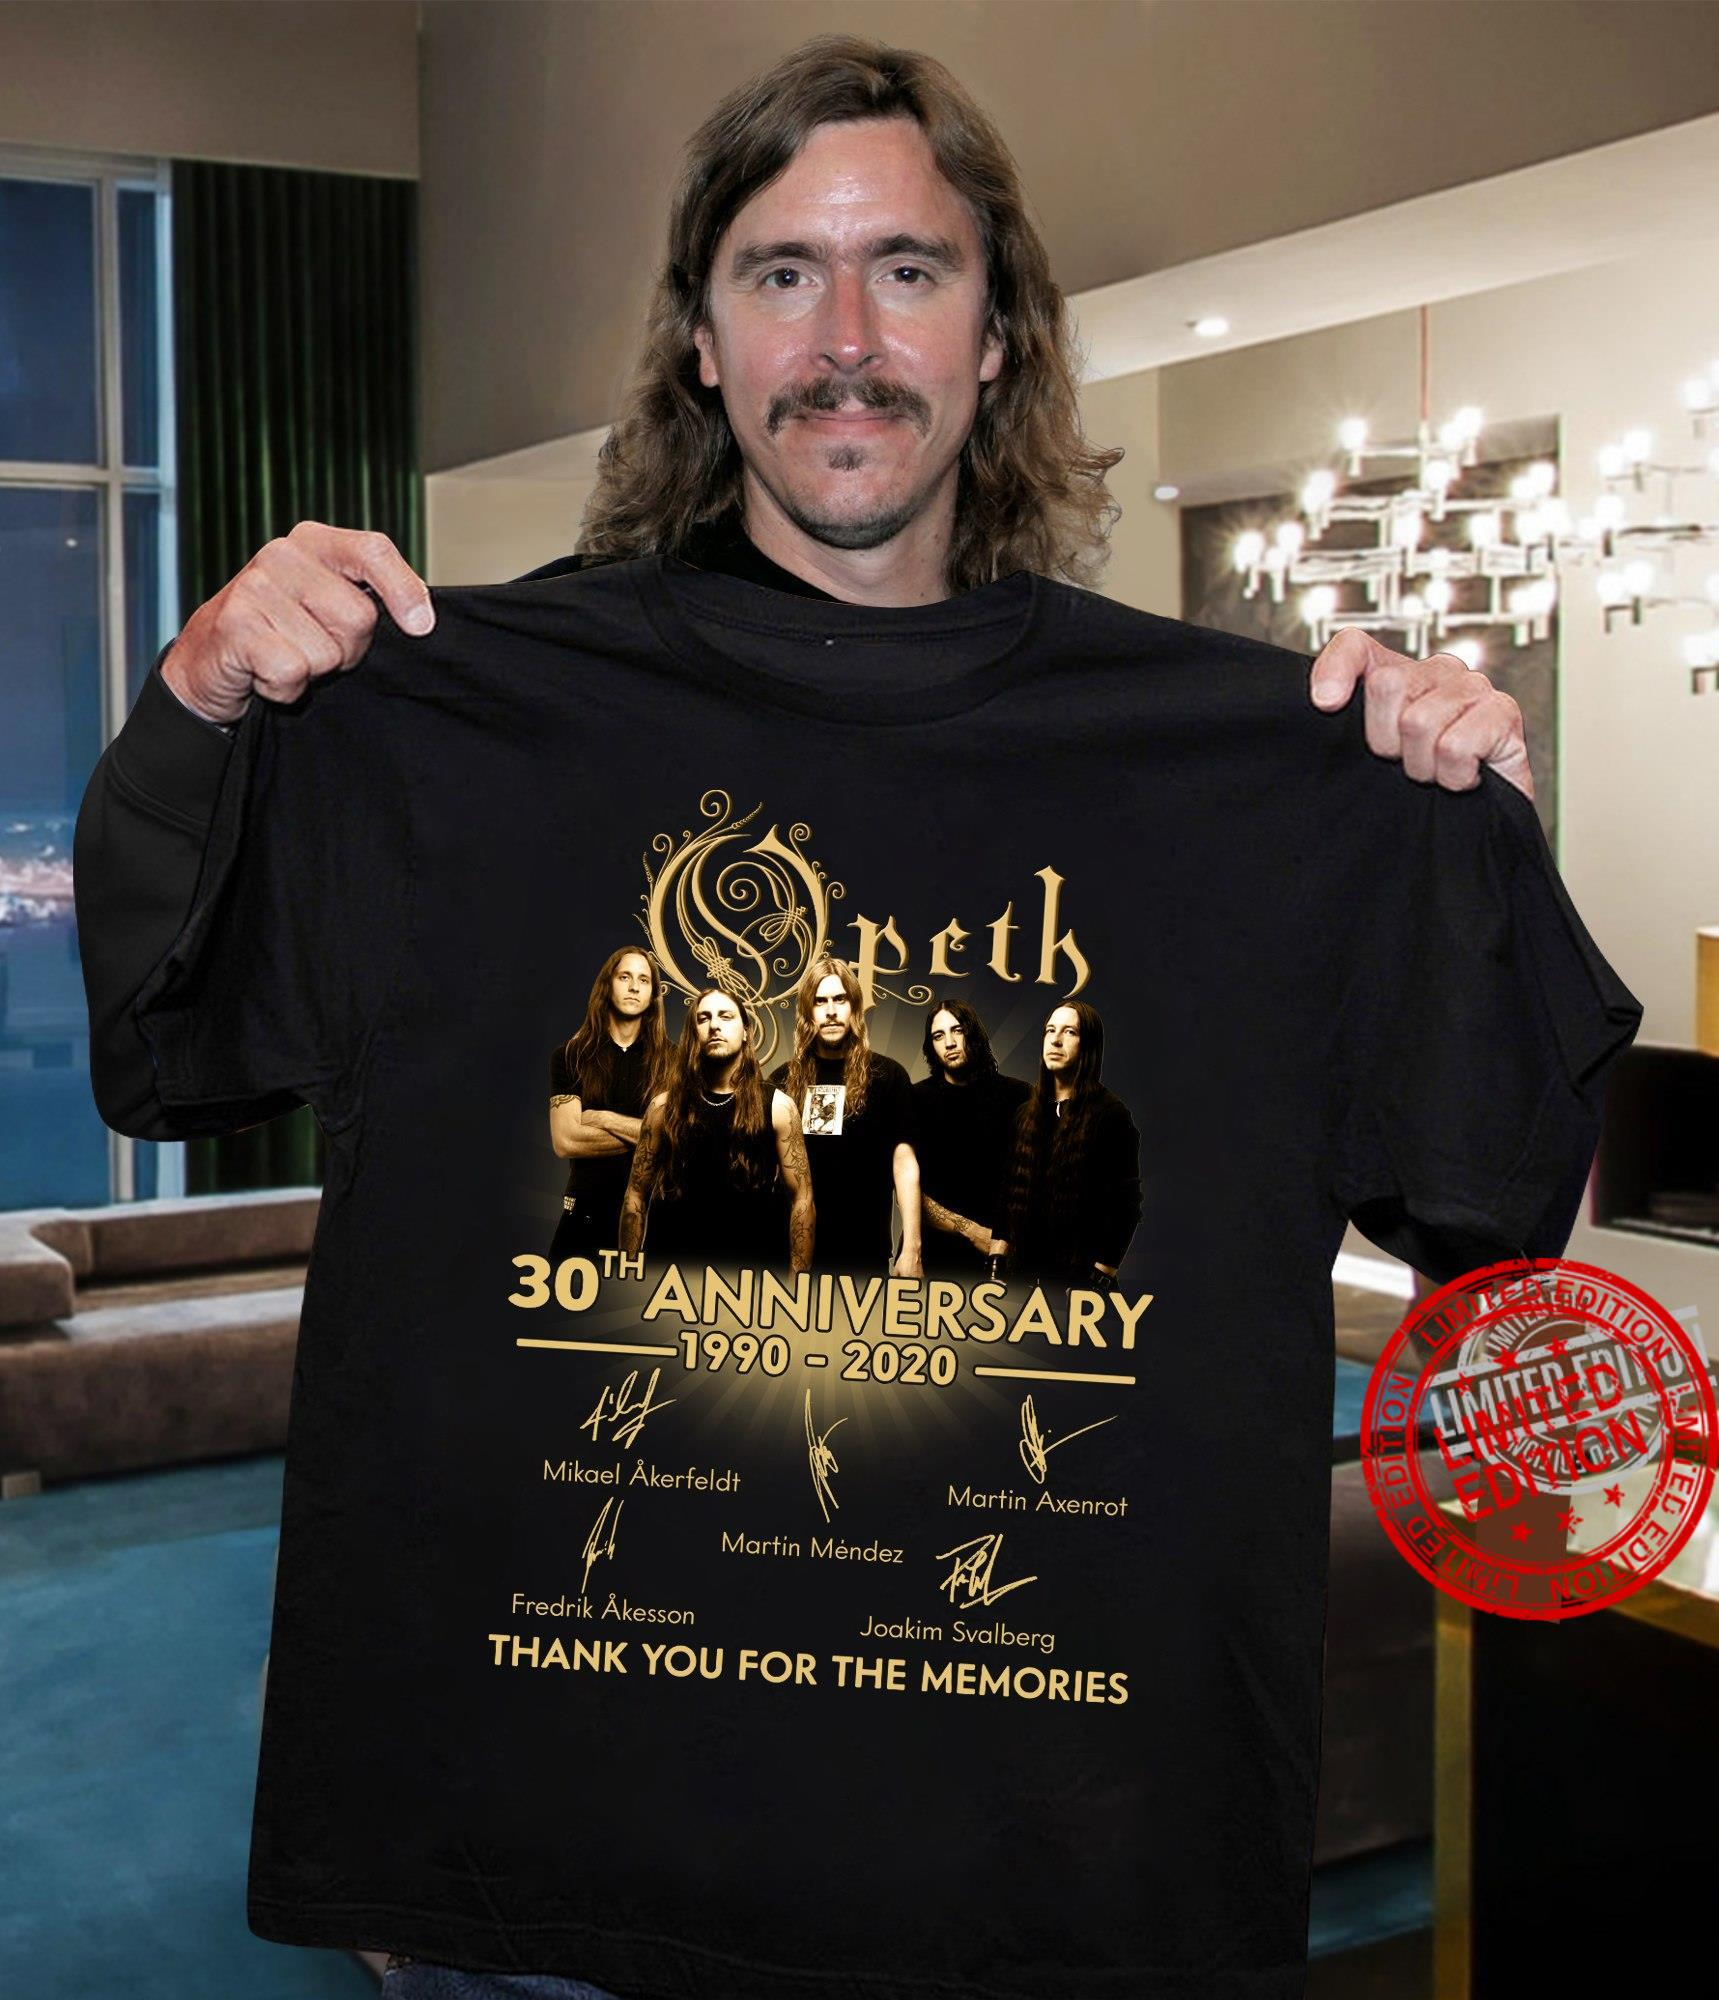 Opeth 30th Anniversary 1990-2020 Thank You For The Memories Shirt